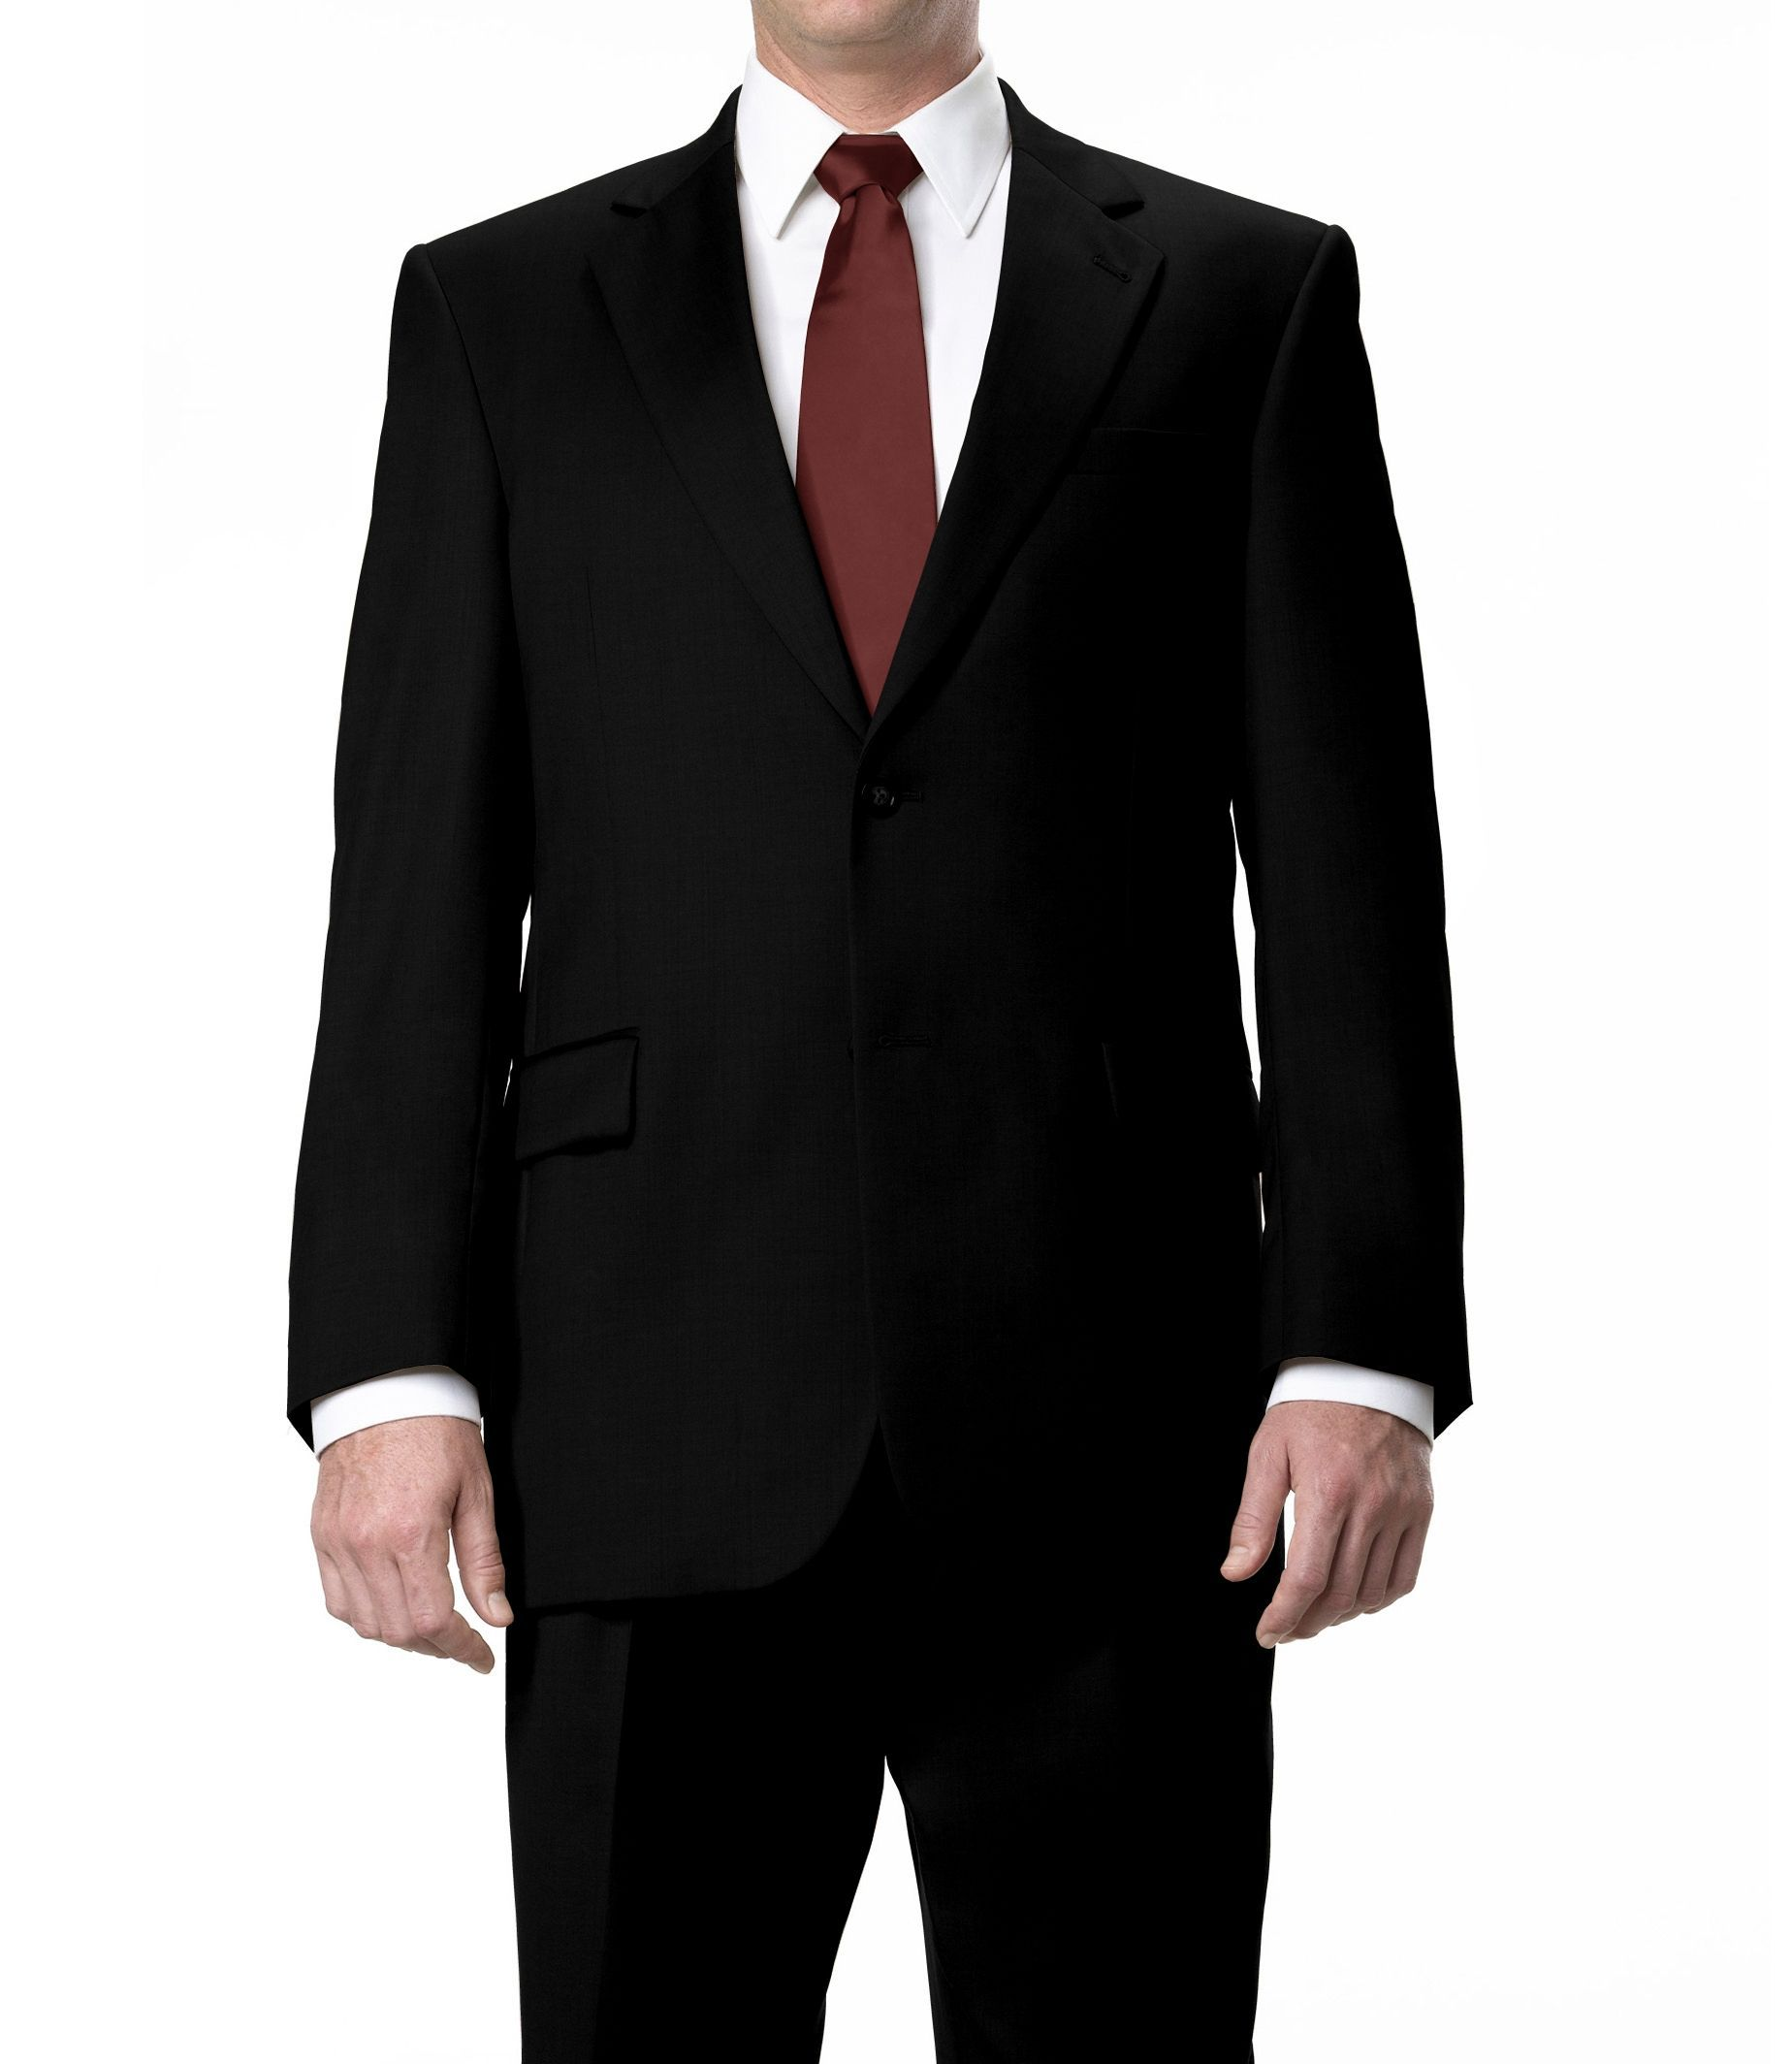 Signature 2-Button Wool Suit with Plain Front Trousers - Black Herringbone